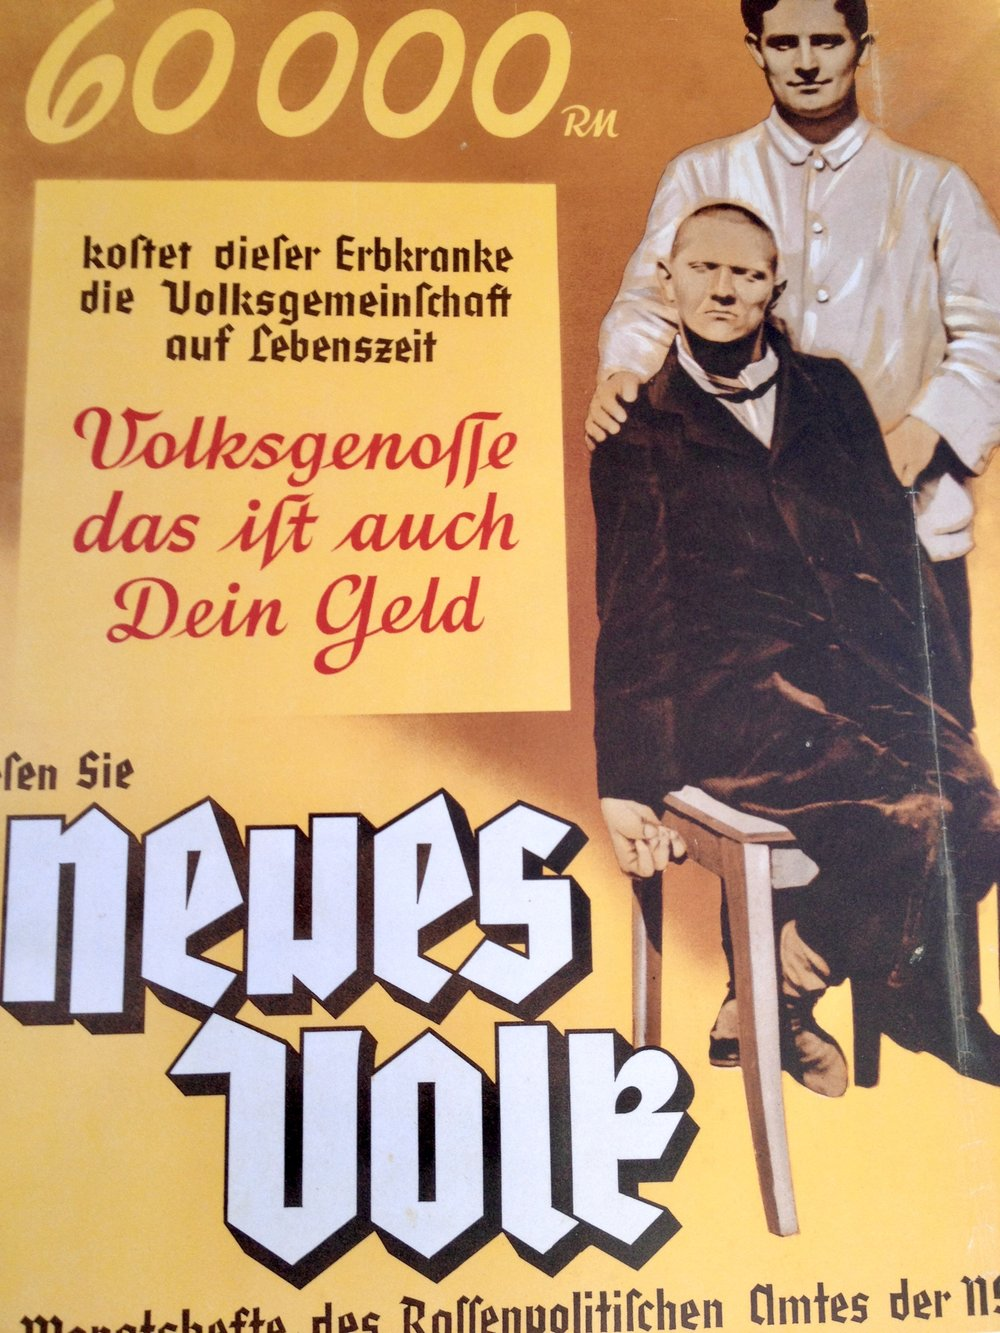 "The poster text reads, ""This hereditary defective costs the Volk community 60,000 RM (Reichsmark) over his lifetime. German comrade (Voksgenosse) that is your money.""  The historical background, ""The Racial Policy Office propagated Nazi 'racial doctrine' in a variety of ways. In posters and publications, it contrasted the ideal of the healthy, capable, and 'racially pure' German with the grossly distorted, biologistic and socially racist image of the unproductive sick and disabled who burdened the 'productive Volk community' as 'ballast existences.'"" Topography of Terror museum.  Sadly, when I saw this years ago it reminded me of the Tea Partiers chanting 'Let them die!' during a political debate in which a question arose regarding what to do about the uninsured."